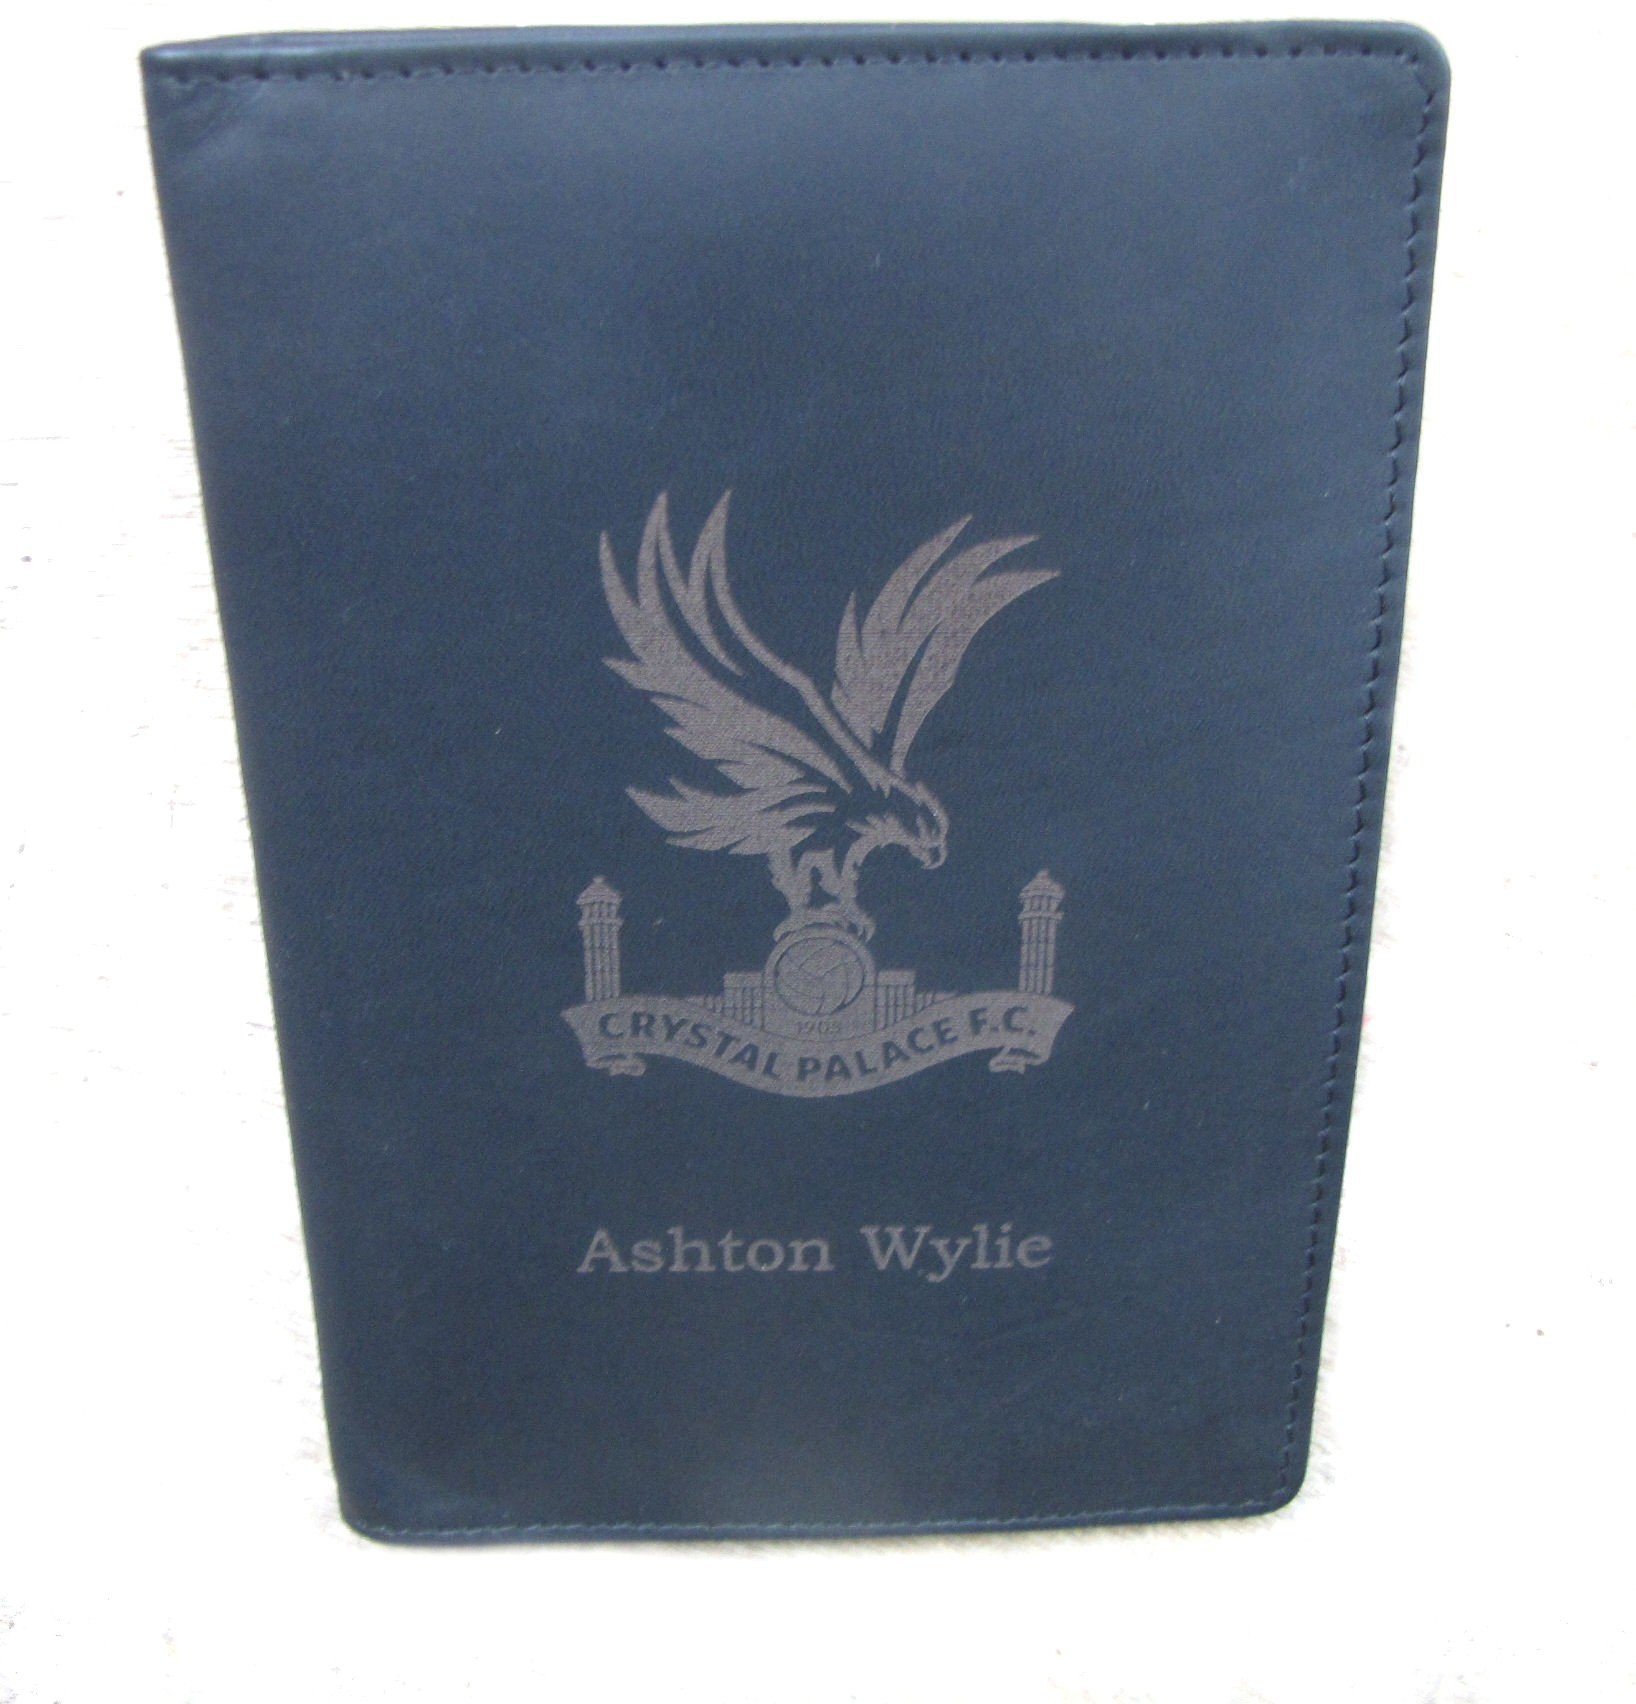 GENUINE LEATHER BLACK GOLF SCORE HOLDER WITH OPTION TO PERSONALISE